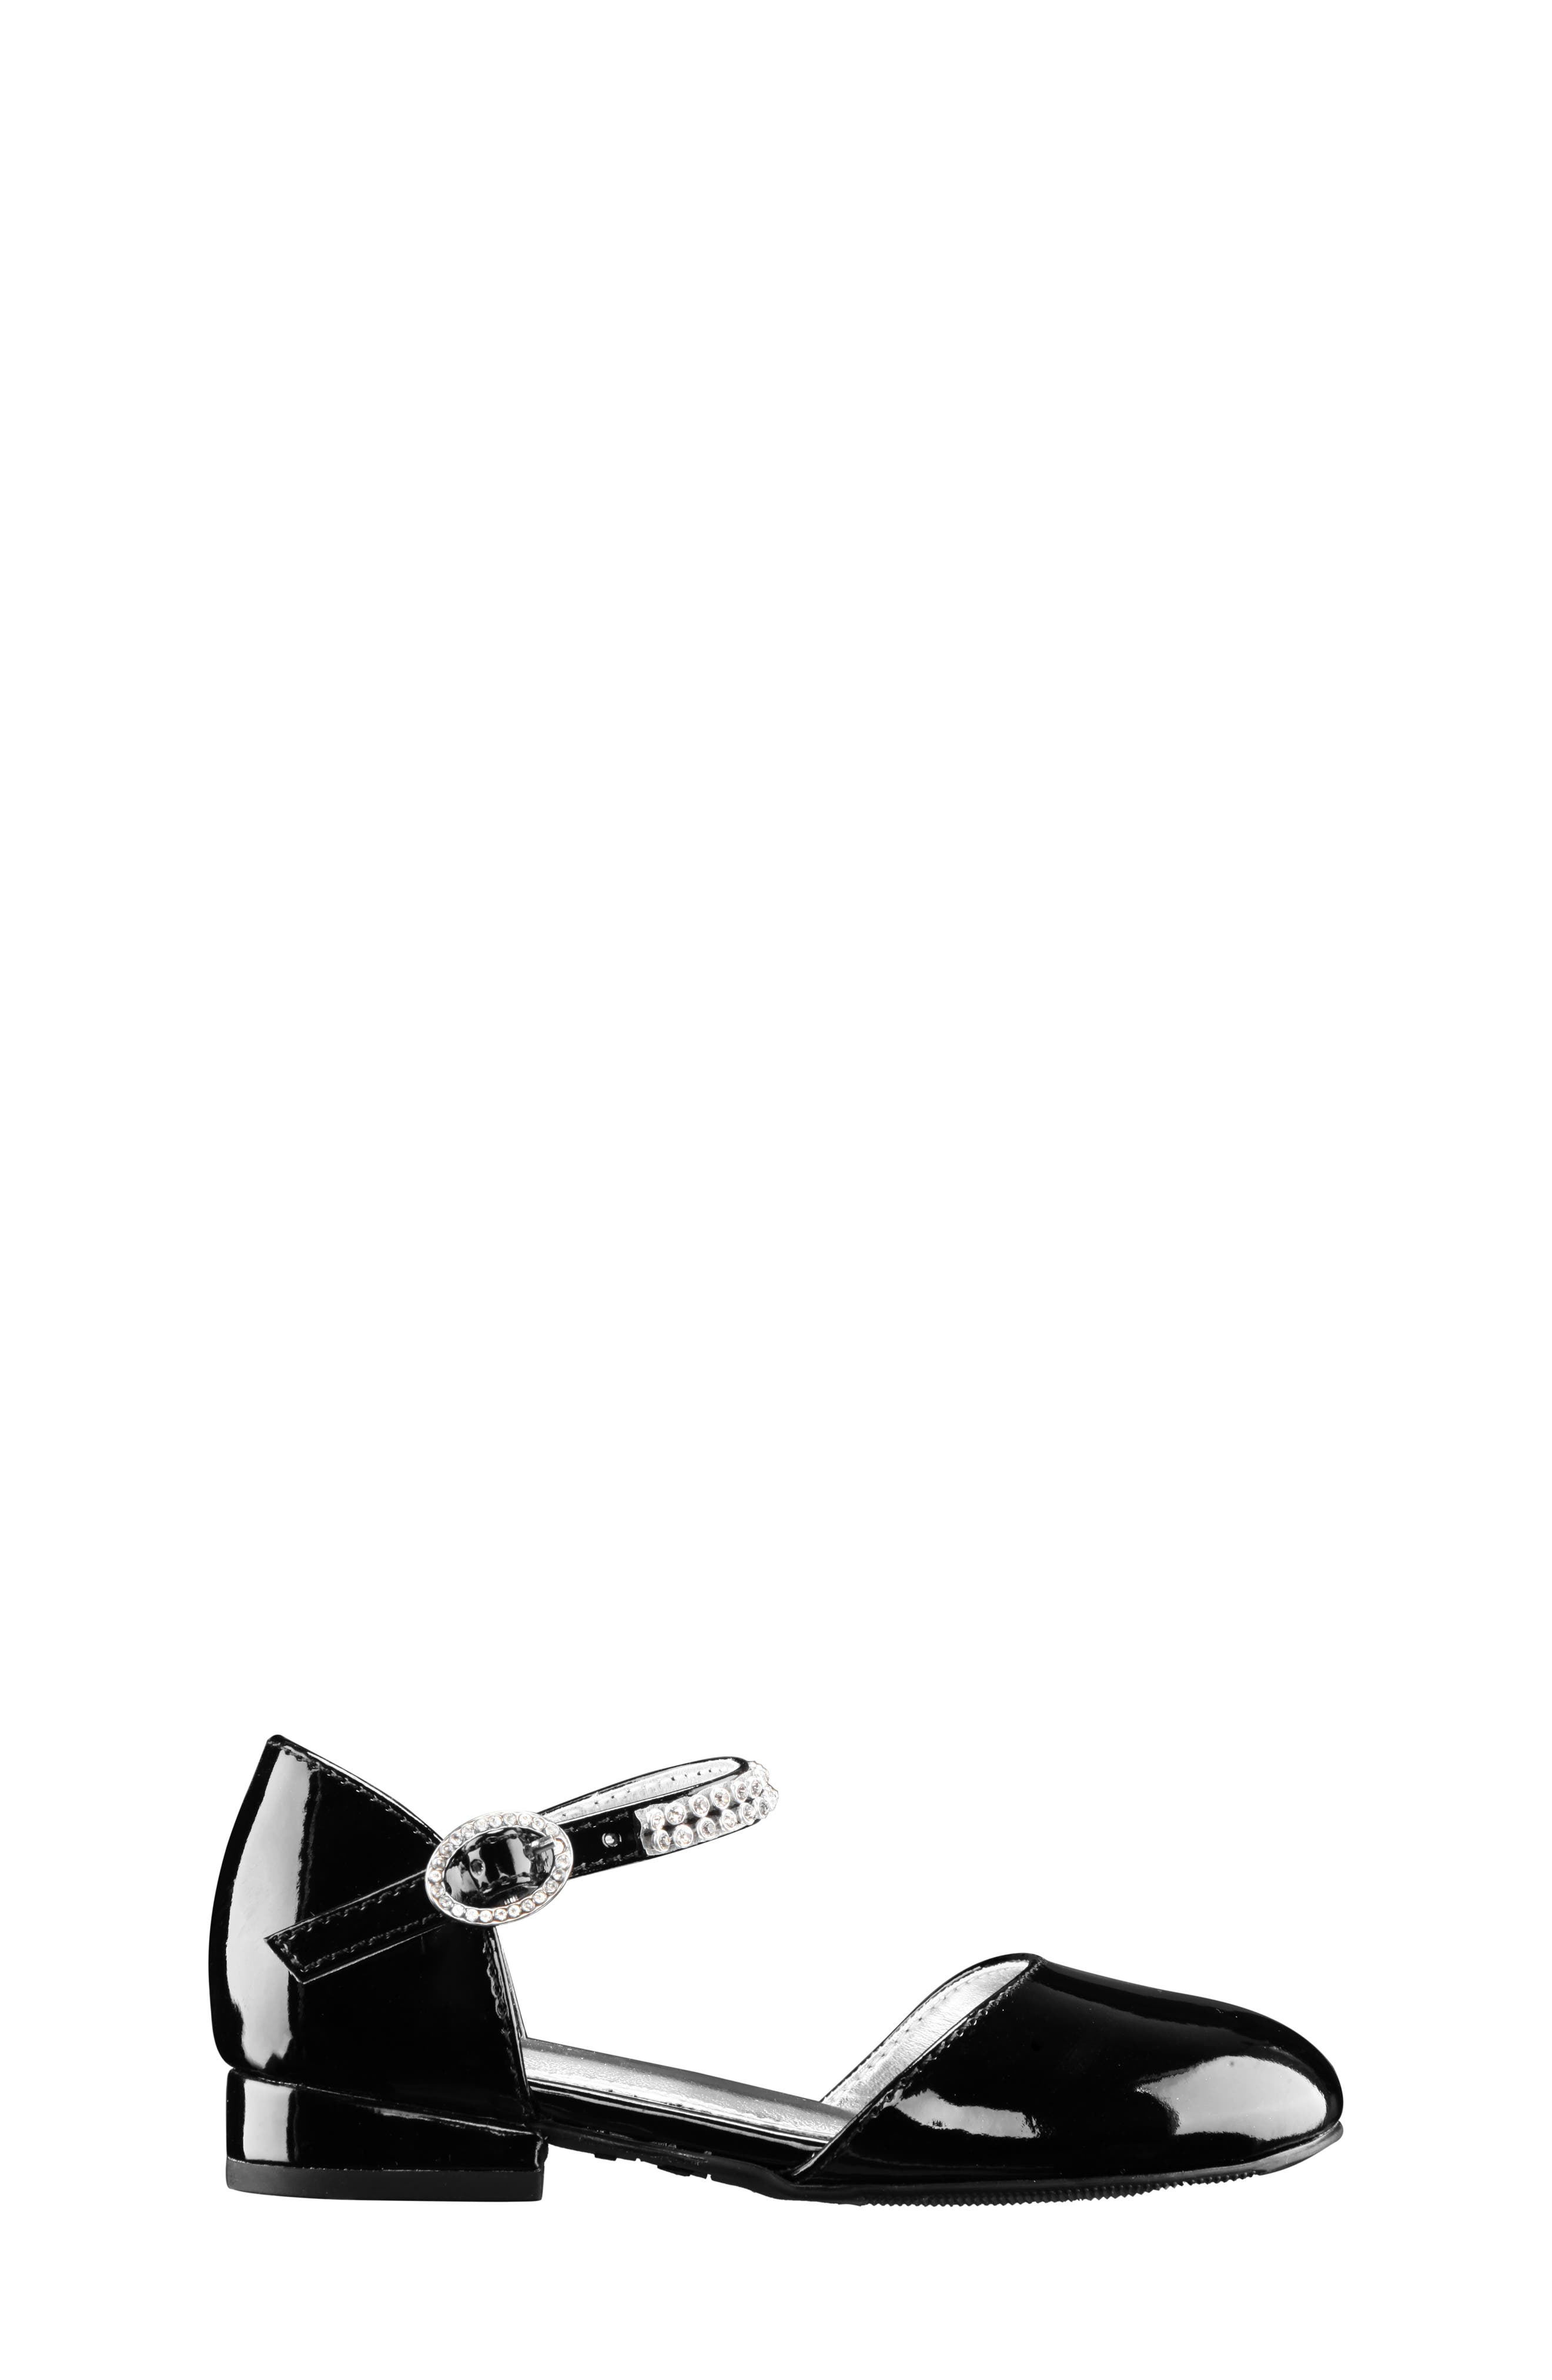 Cera Crystal Embellished d'Orsay Sandal,                             Alternate thumbnail 3, color,                             BLACK PATENT